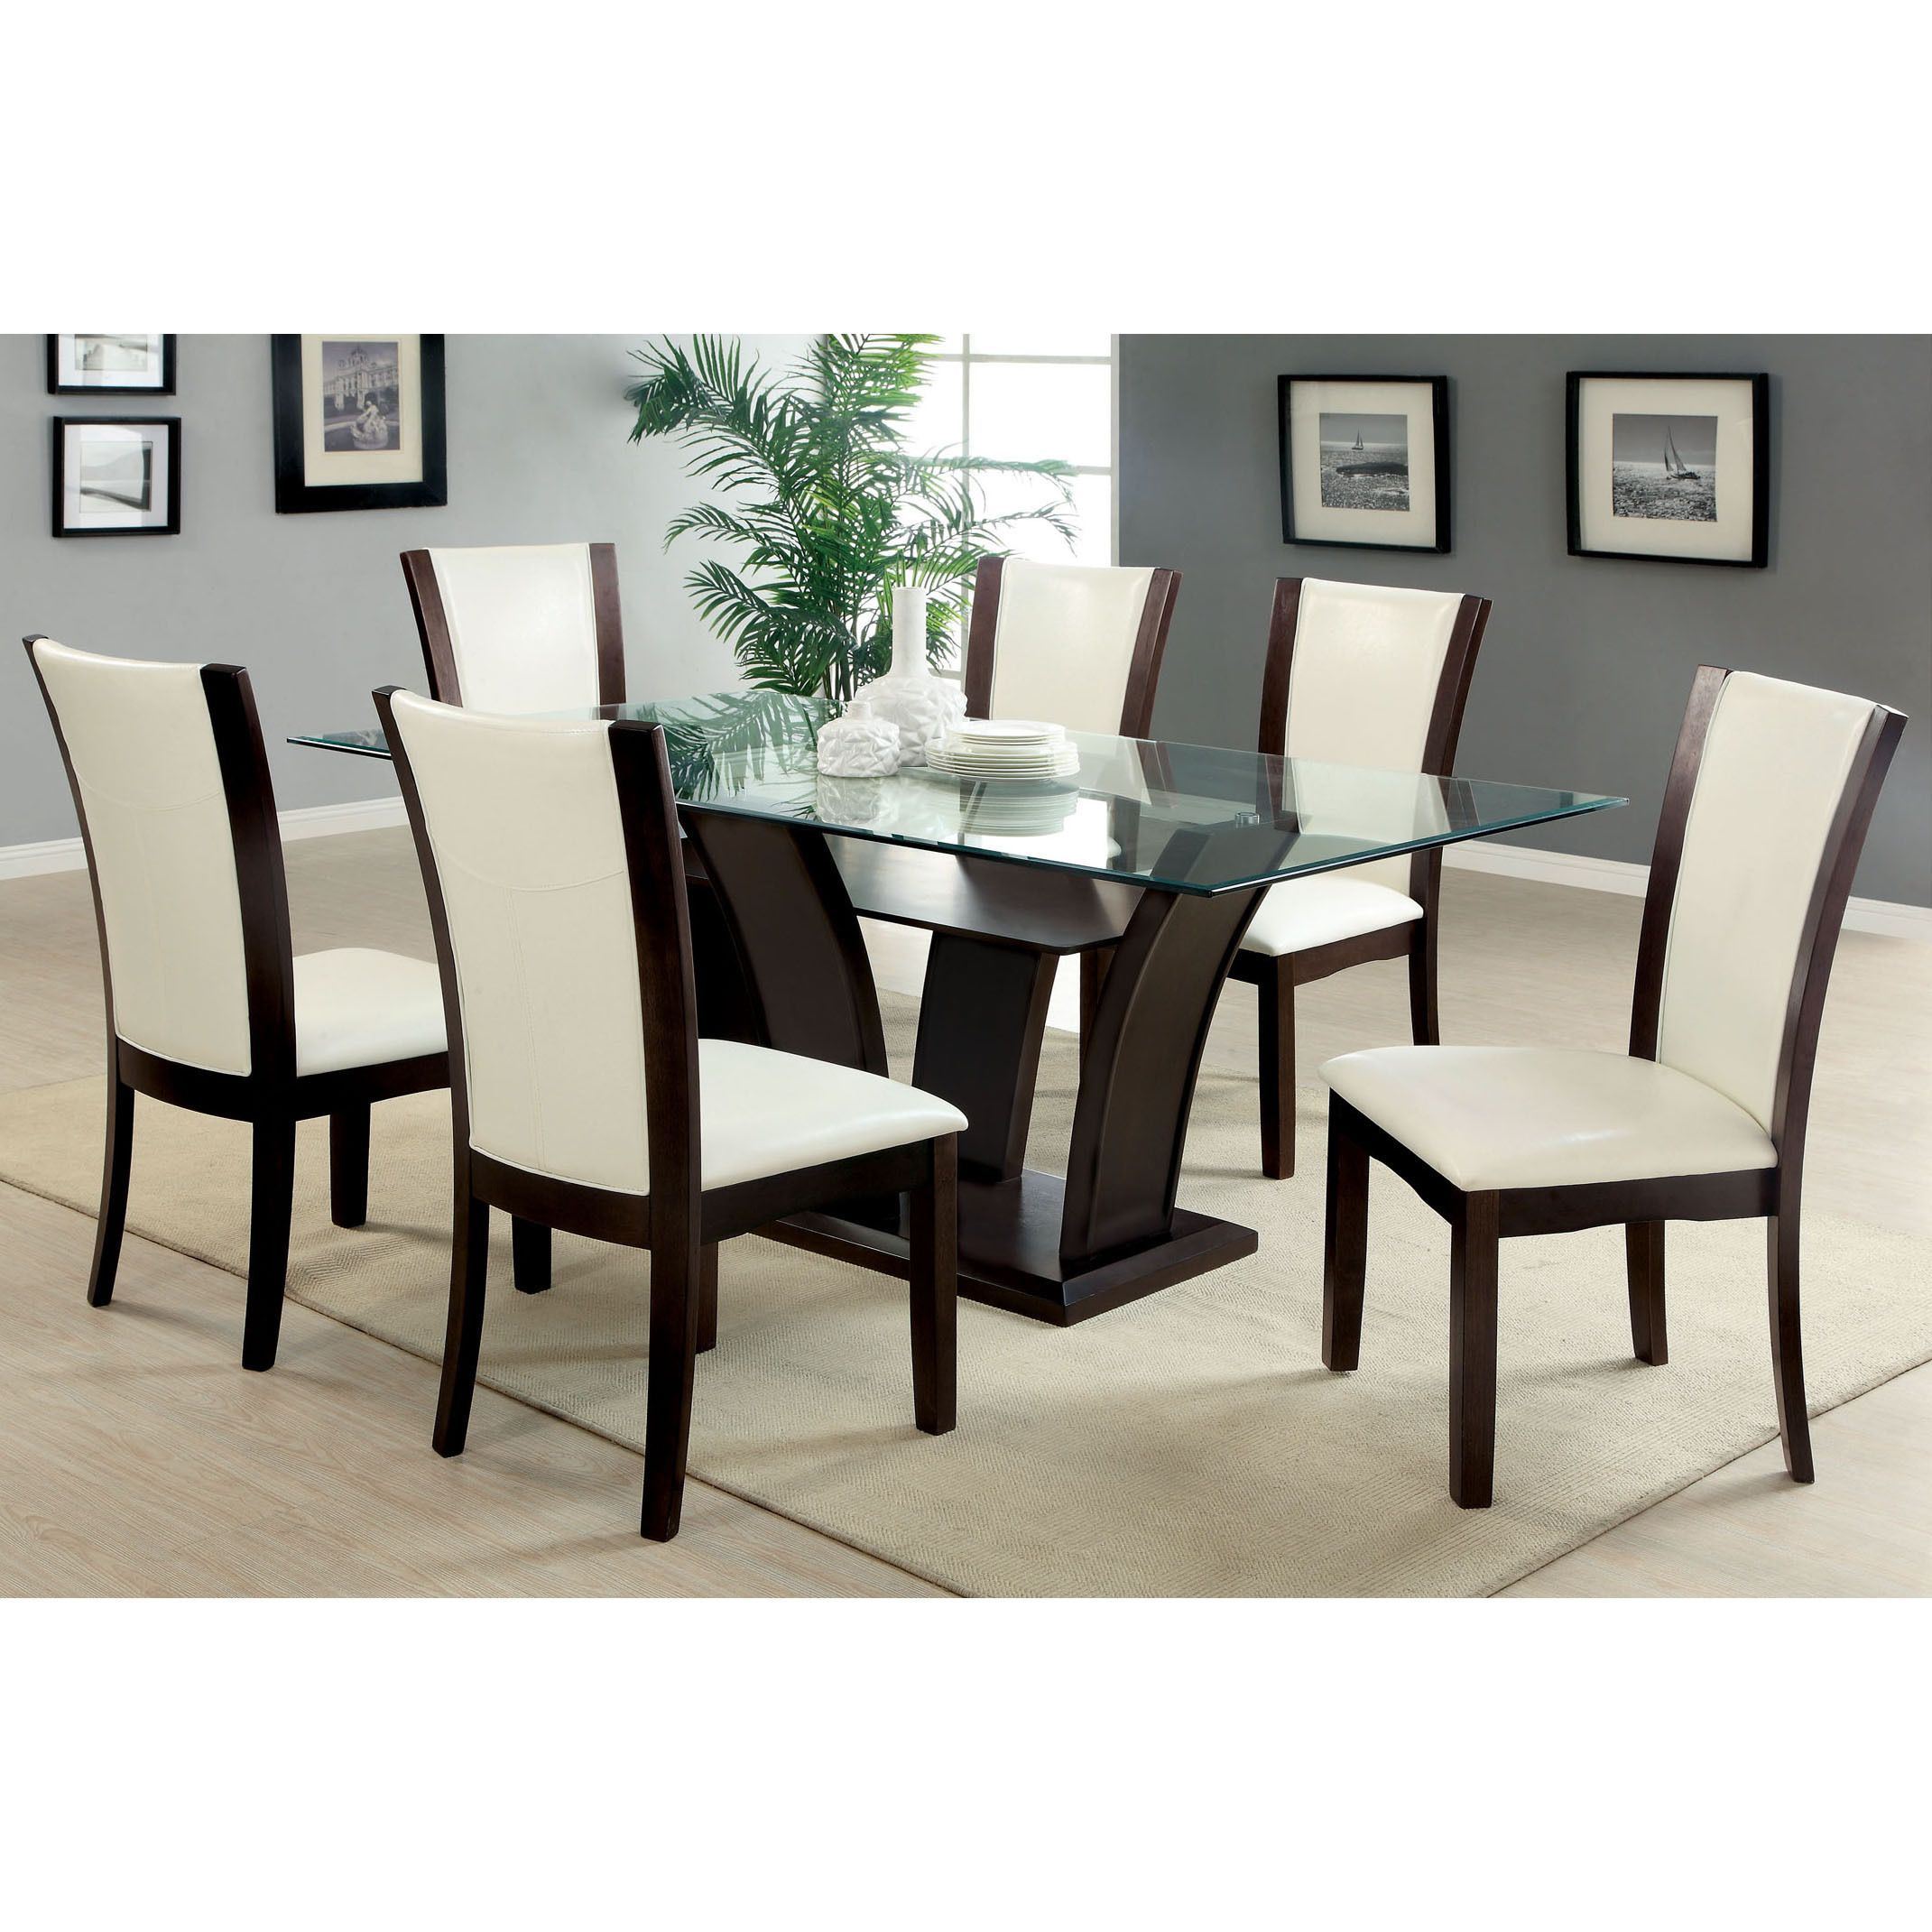 Furniture Of America Marion Contemporary 7 Piece Glass Top Dining Set (Dark  Cherry With White Leatherette), Brown, Size 7 Piece Sets